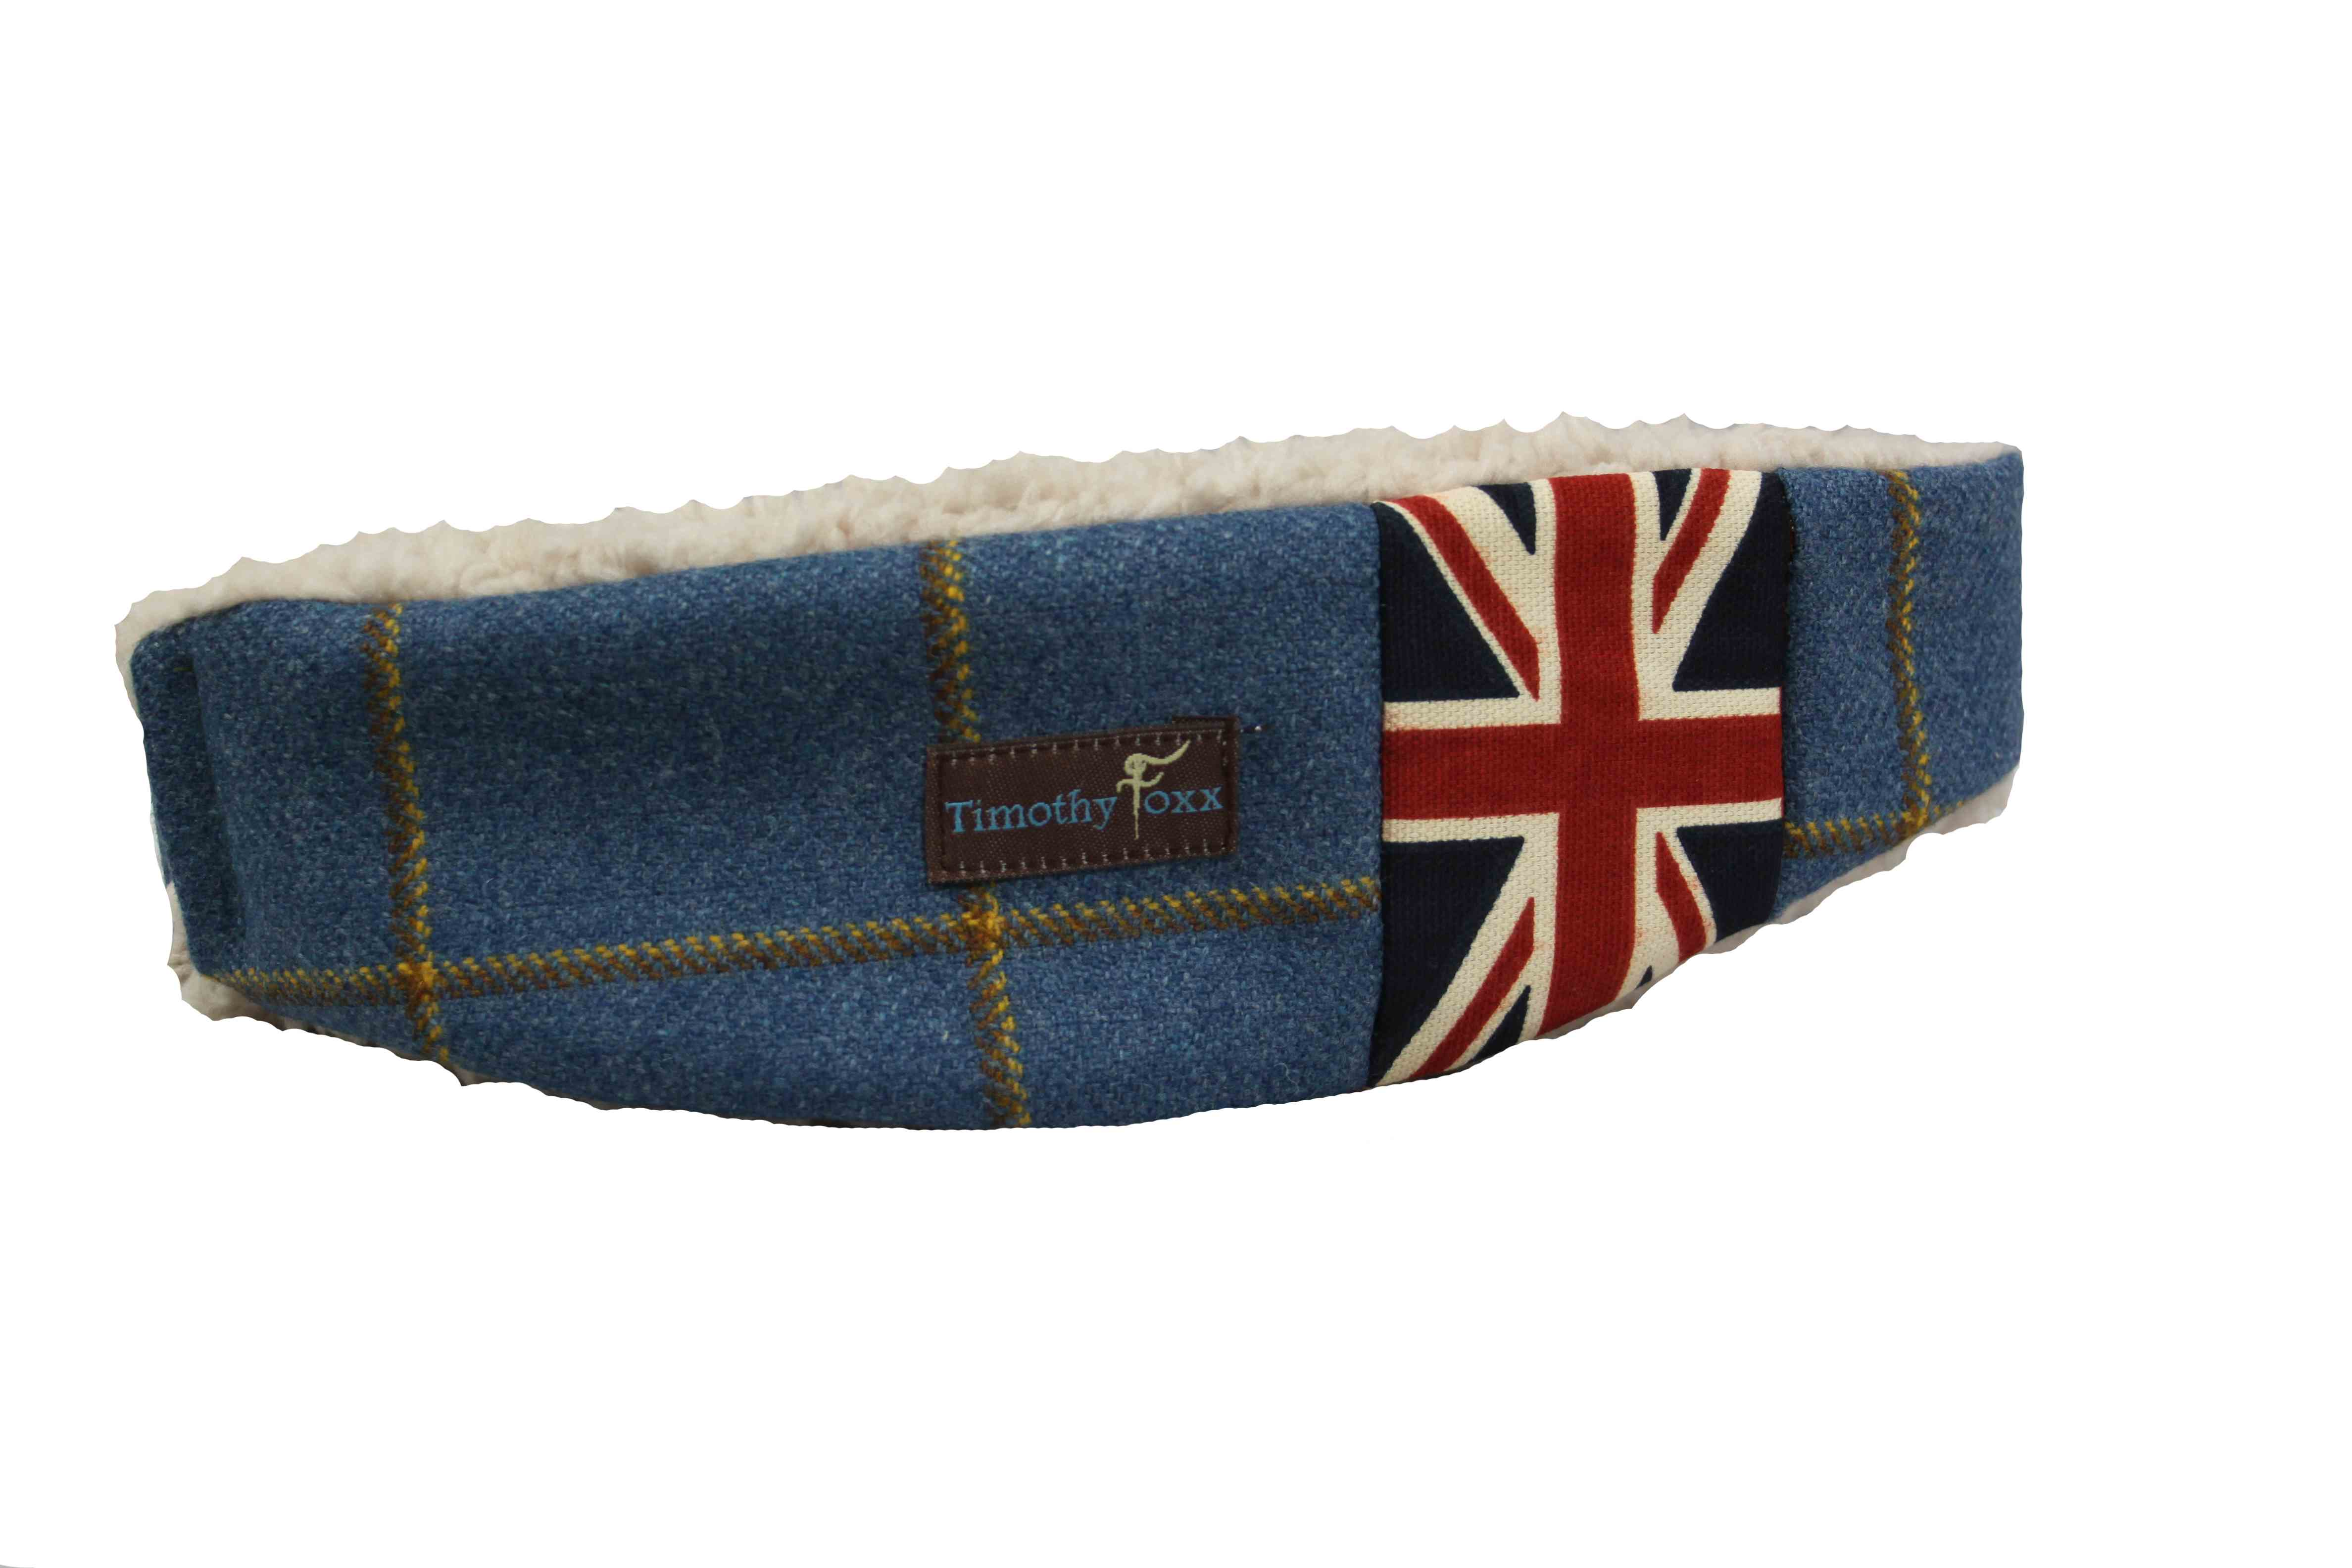 New Foxglove Union Jack Earwarmer emailer - Winter Warmth With Style! From Timothy Foxx